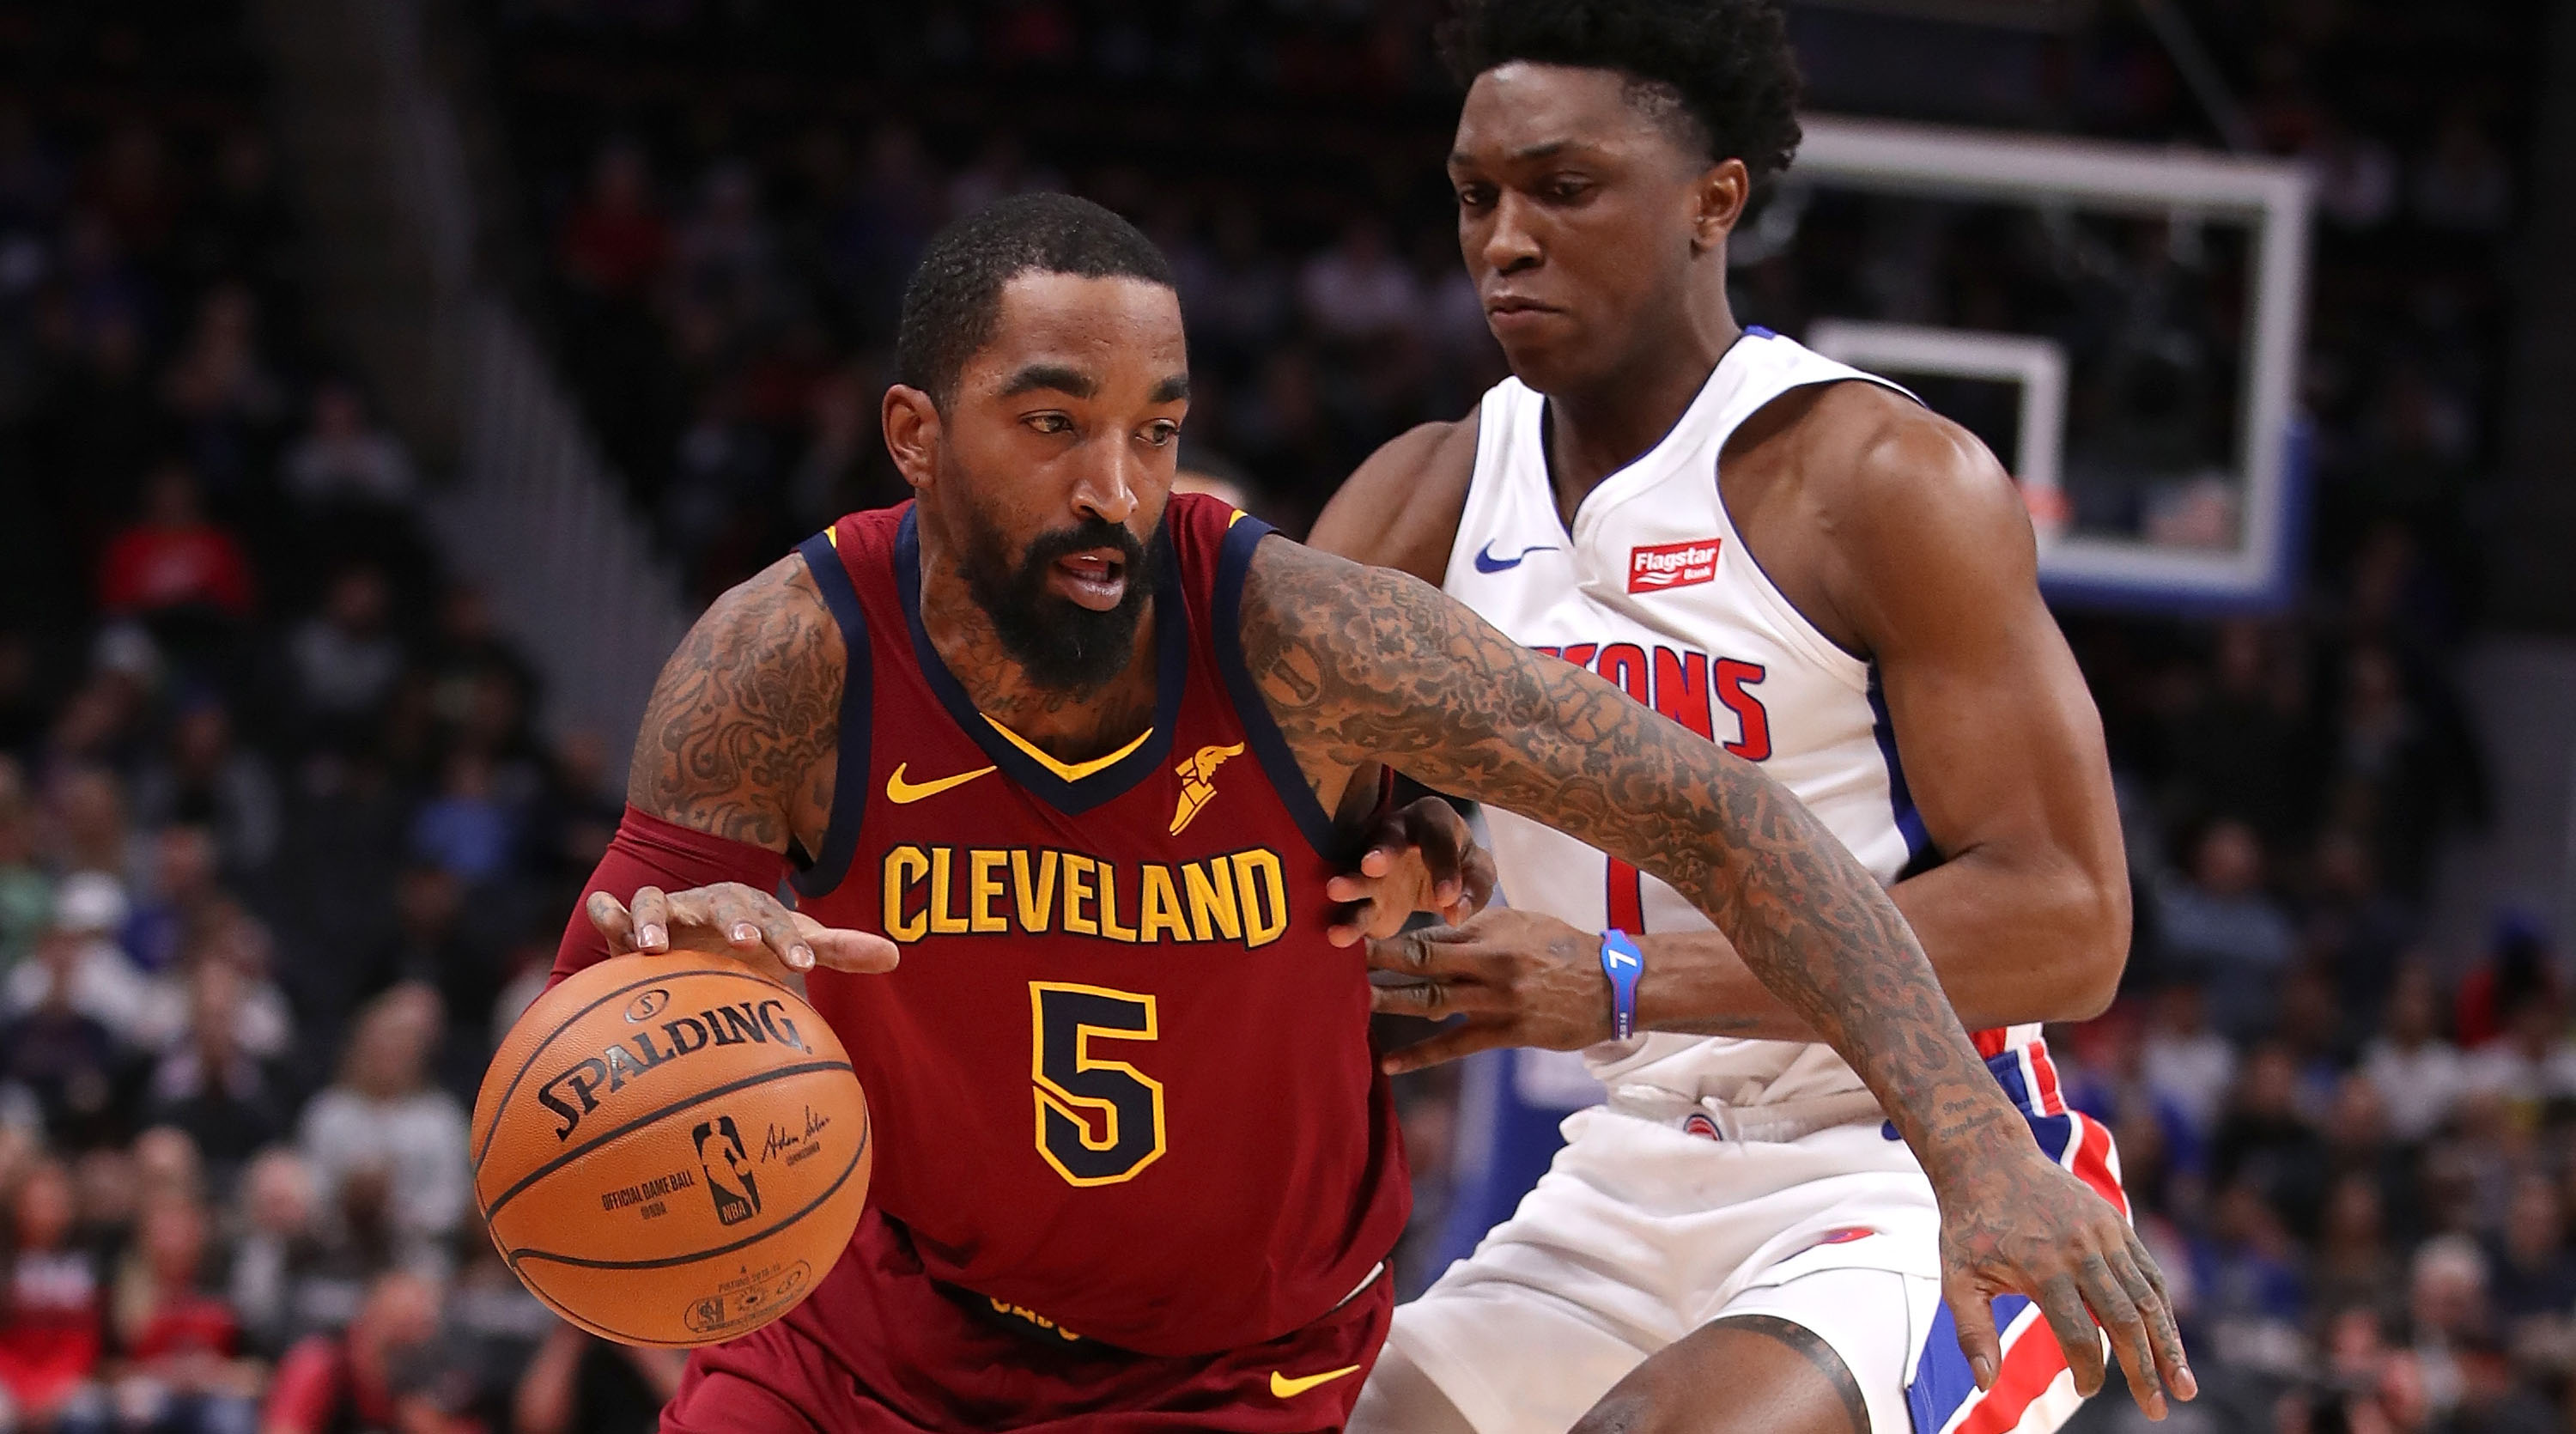 JR Smith to be waived